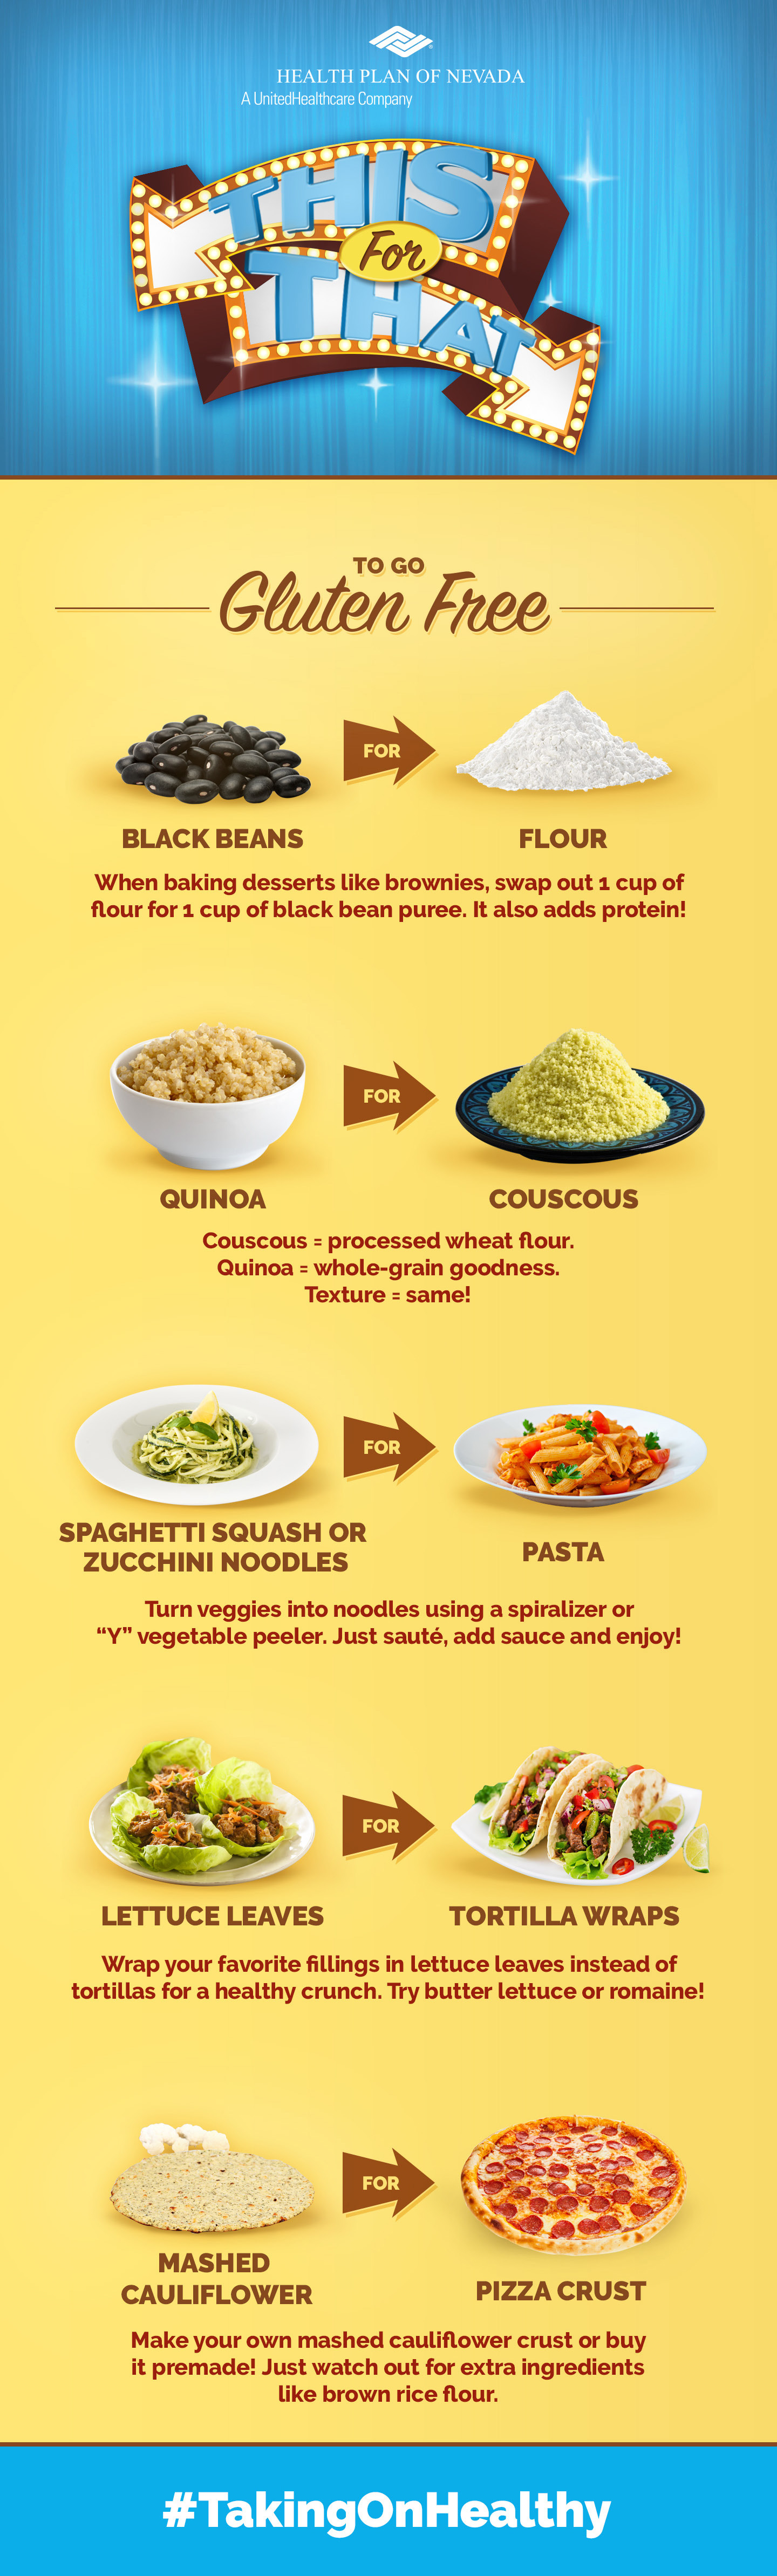 Healthy Food Swaps - Gluten Free